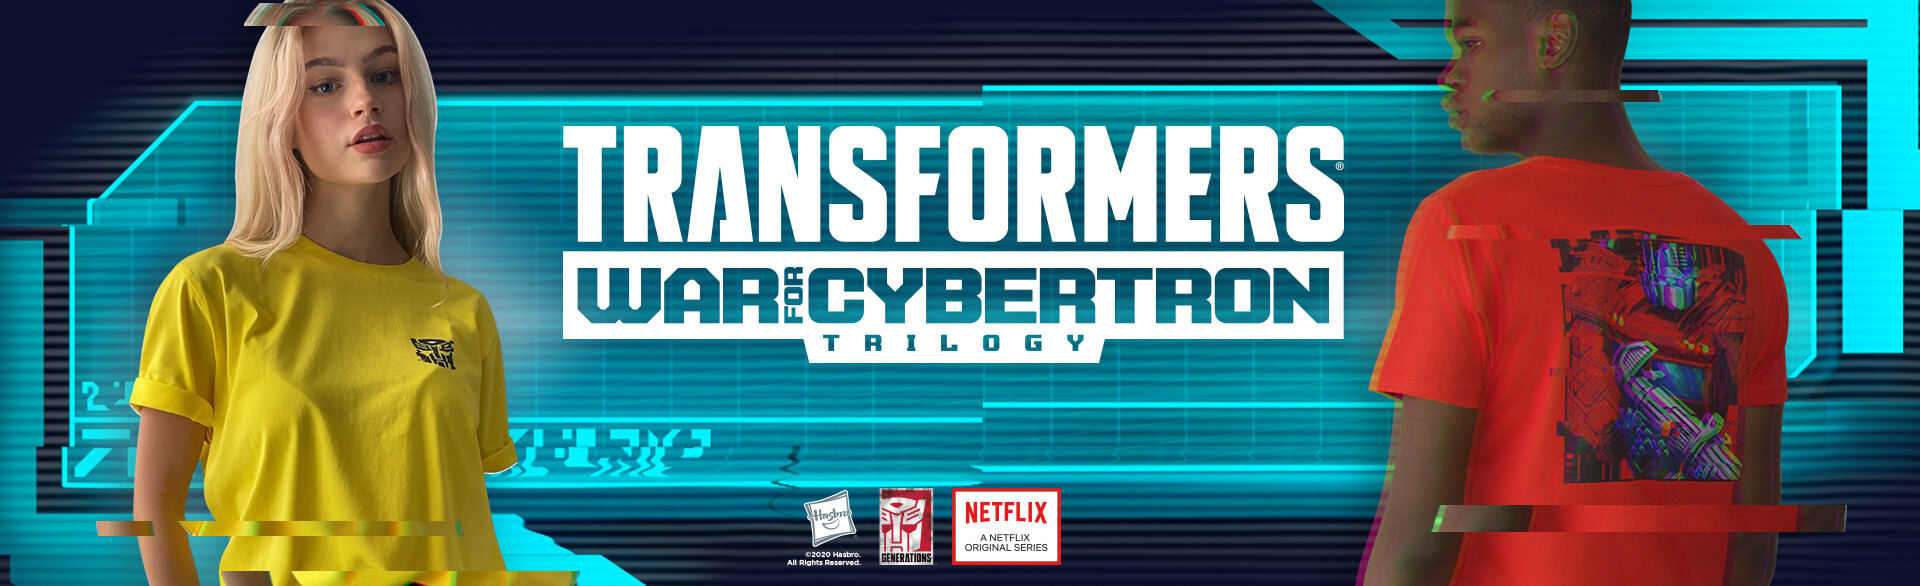 Transformers War For Cybertron Trilogy